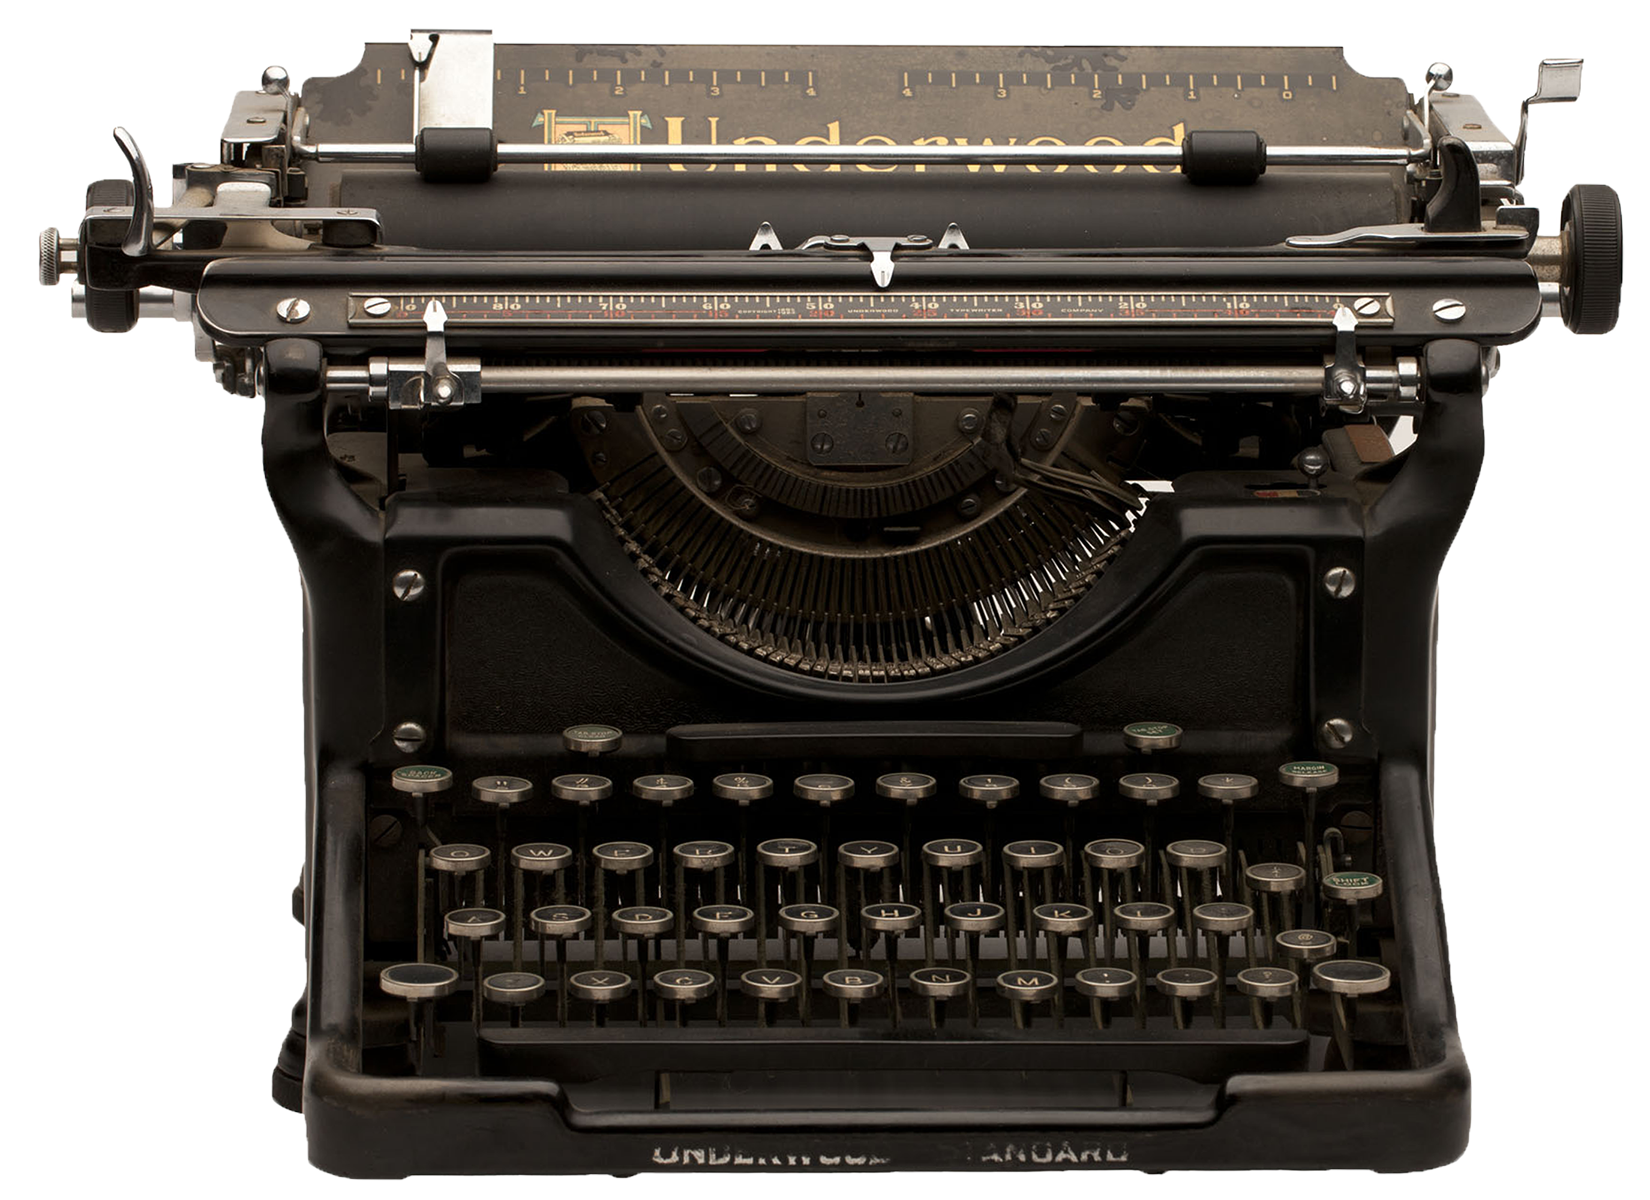 Photo of Ken Kitasako's typewriter.